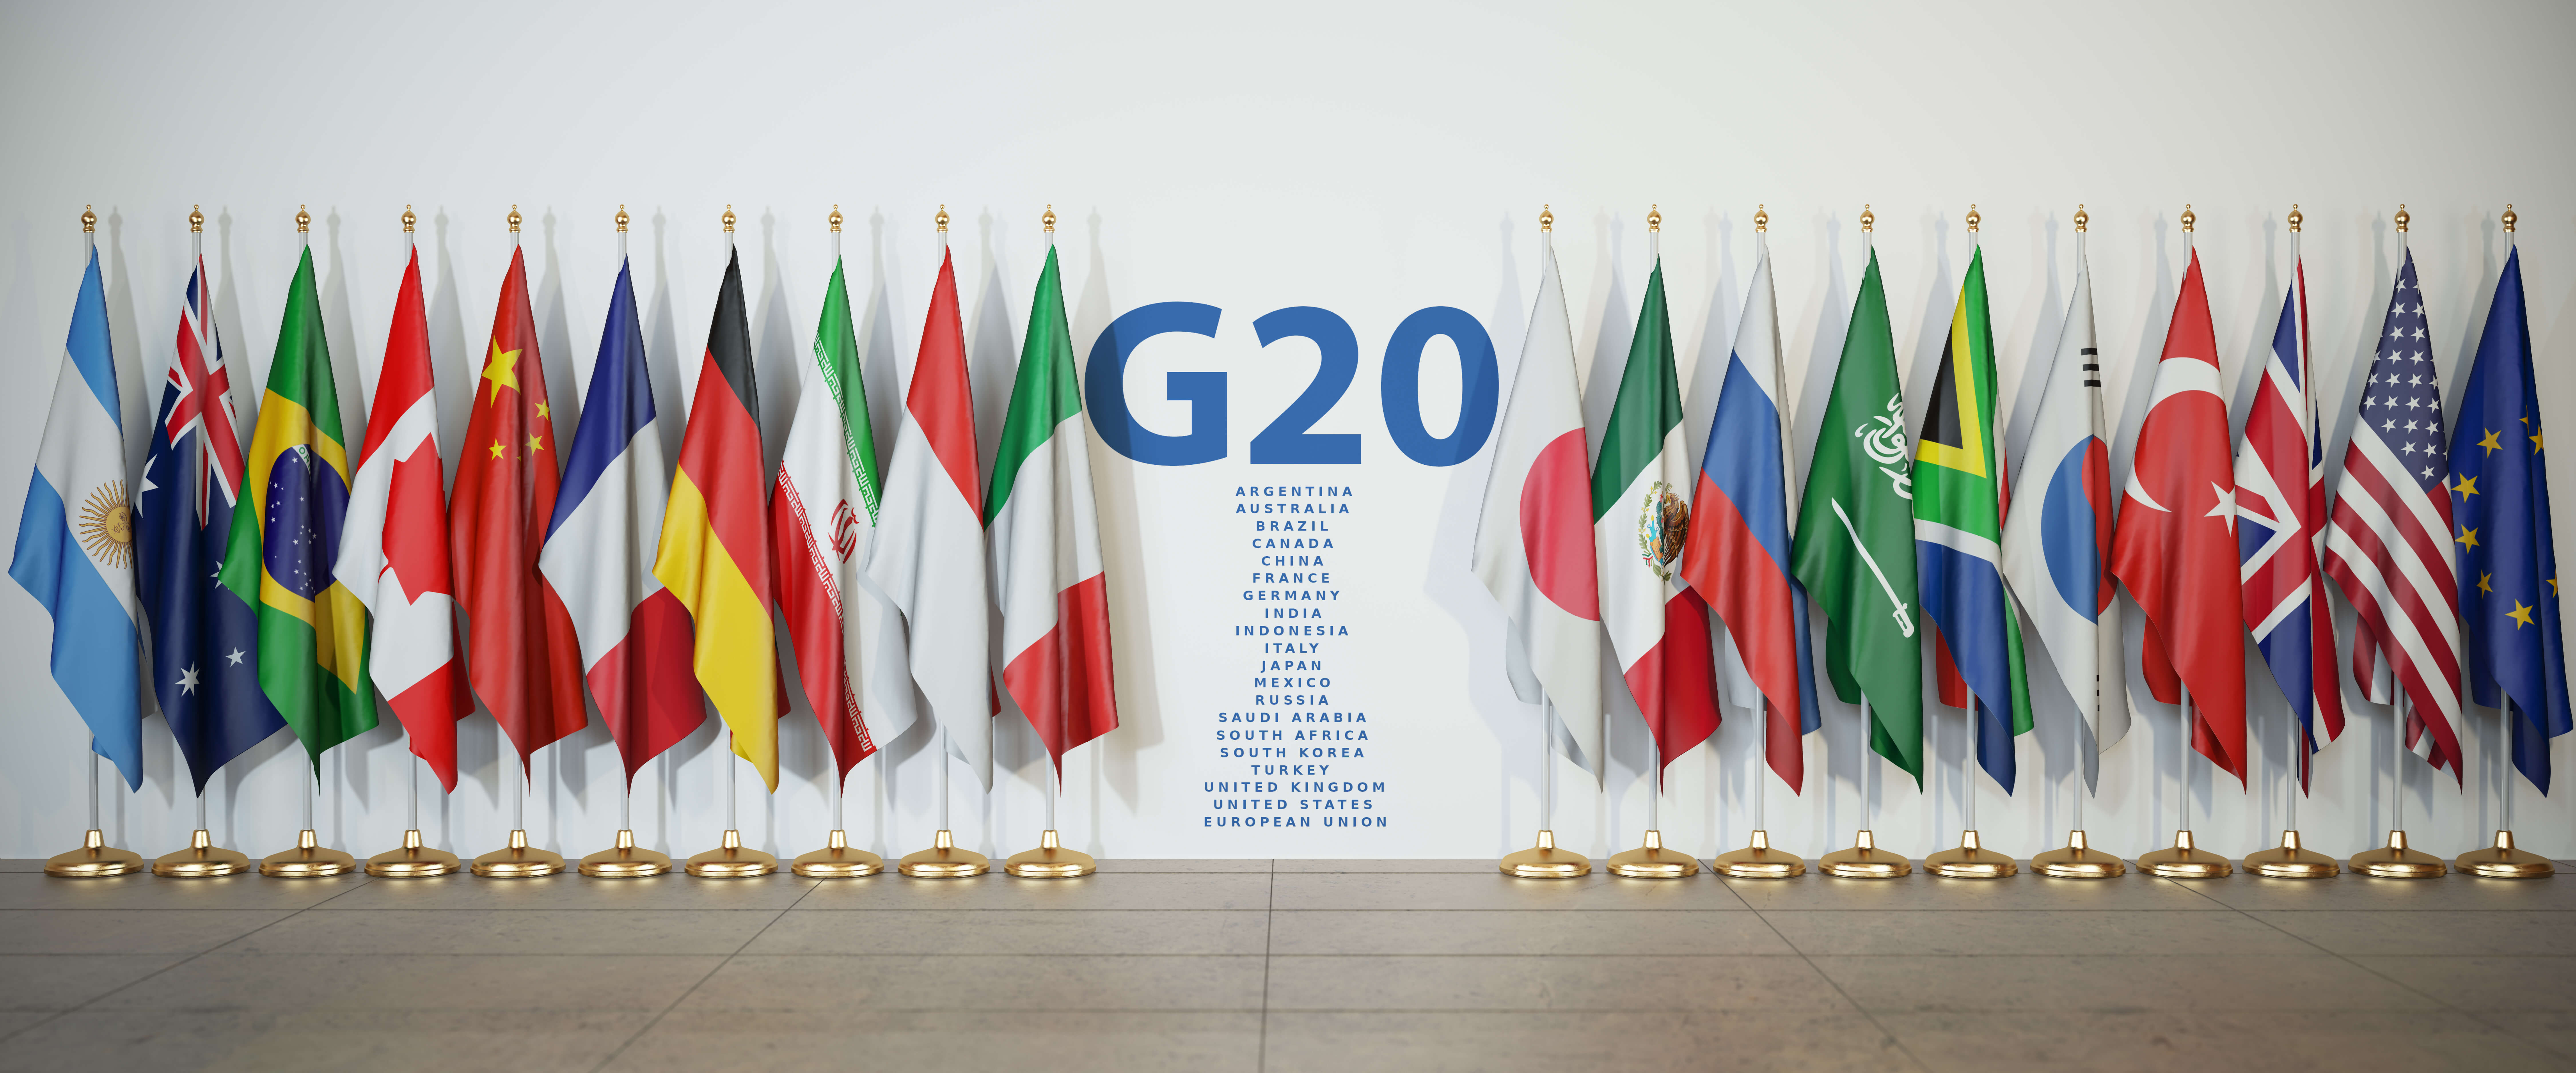 Biggest economies and the G-20 summit